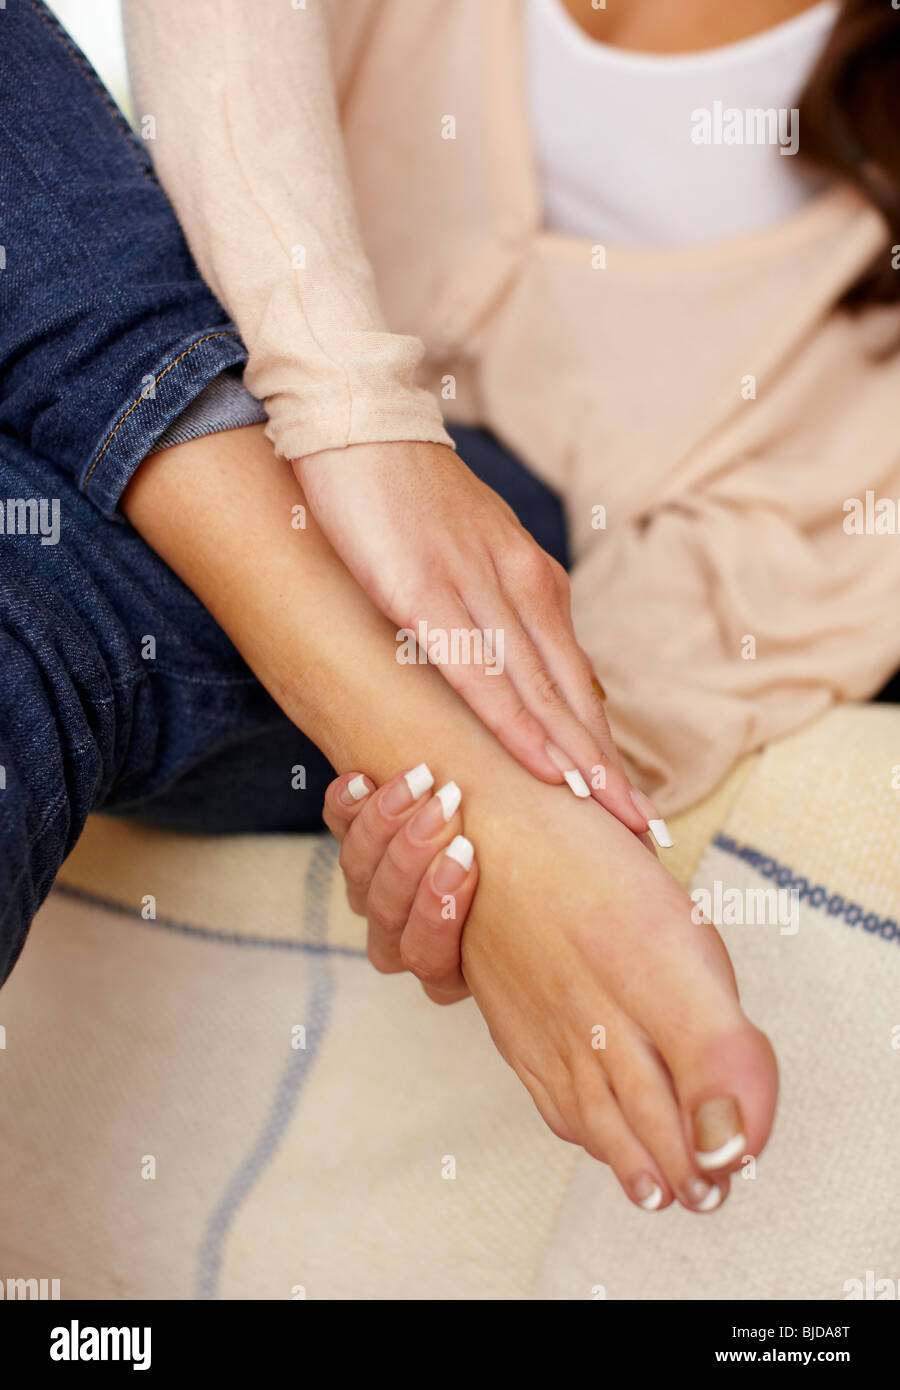 Woman massaging aching feet Stock Photo